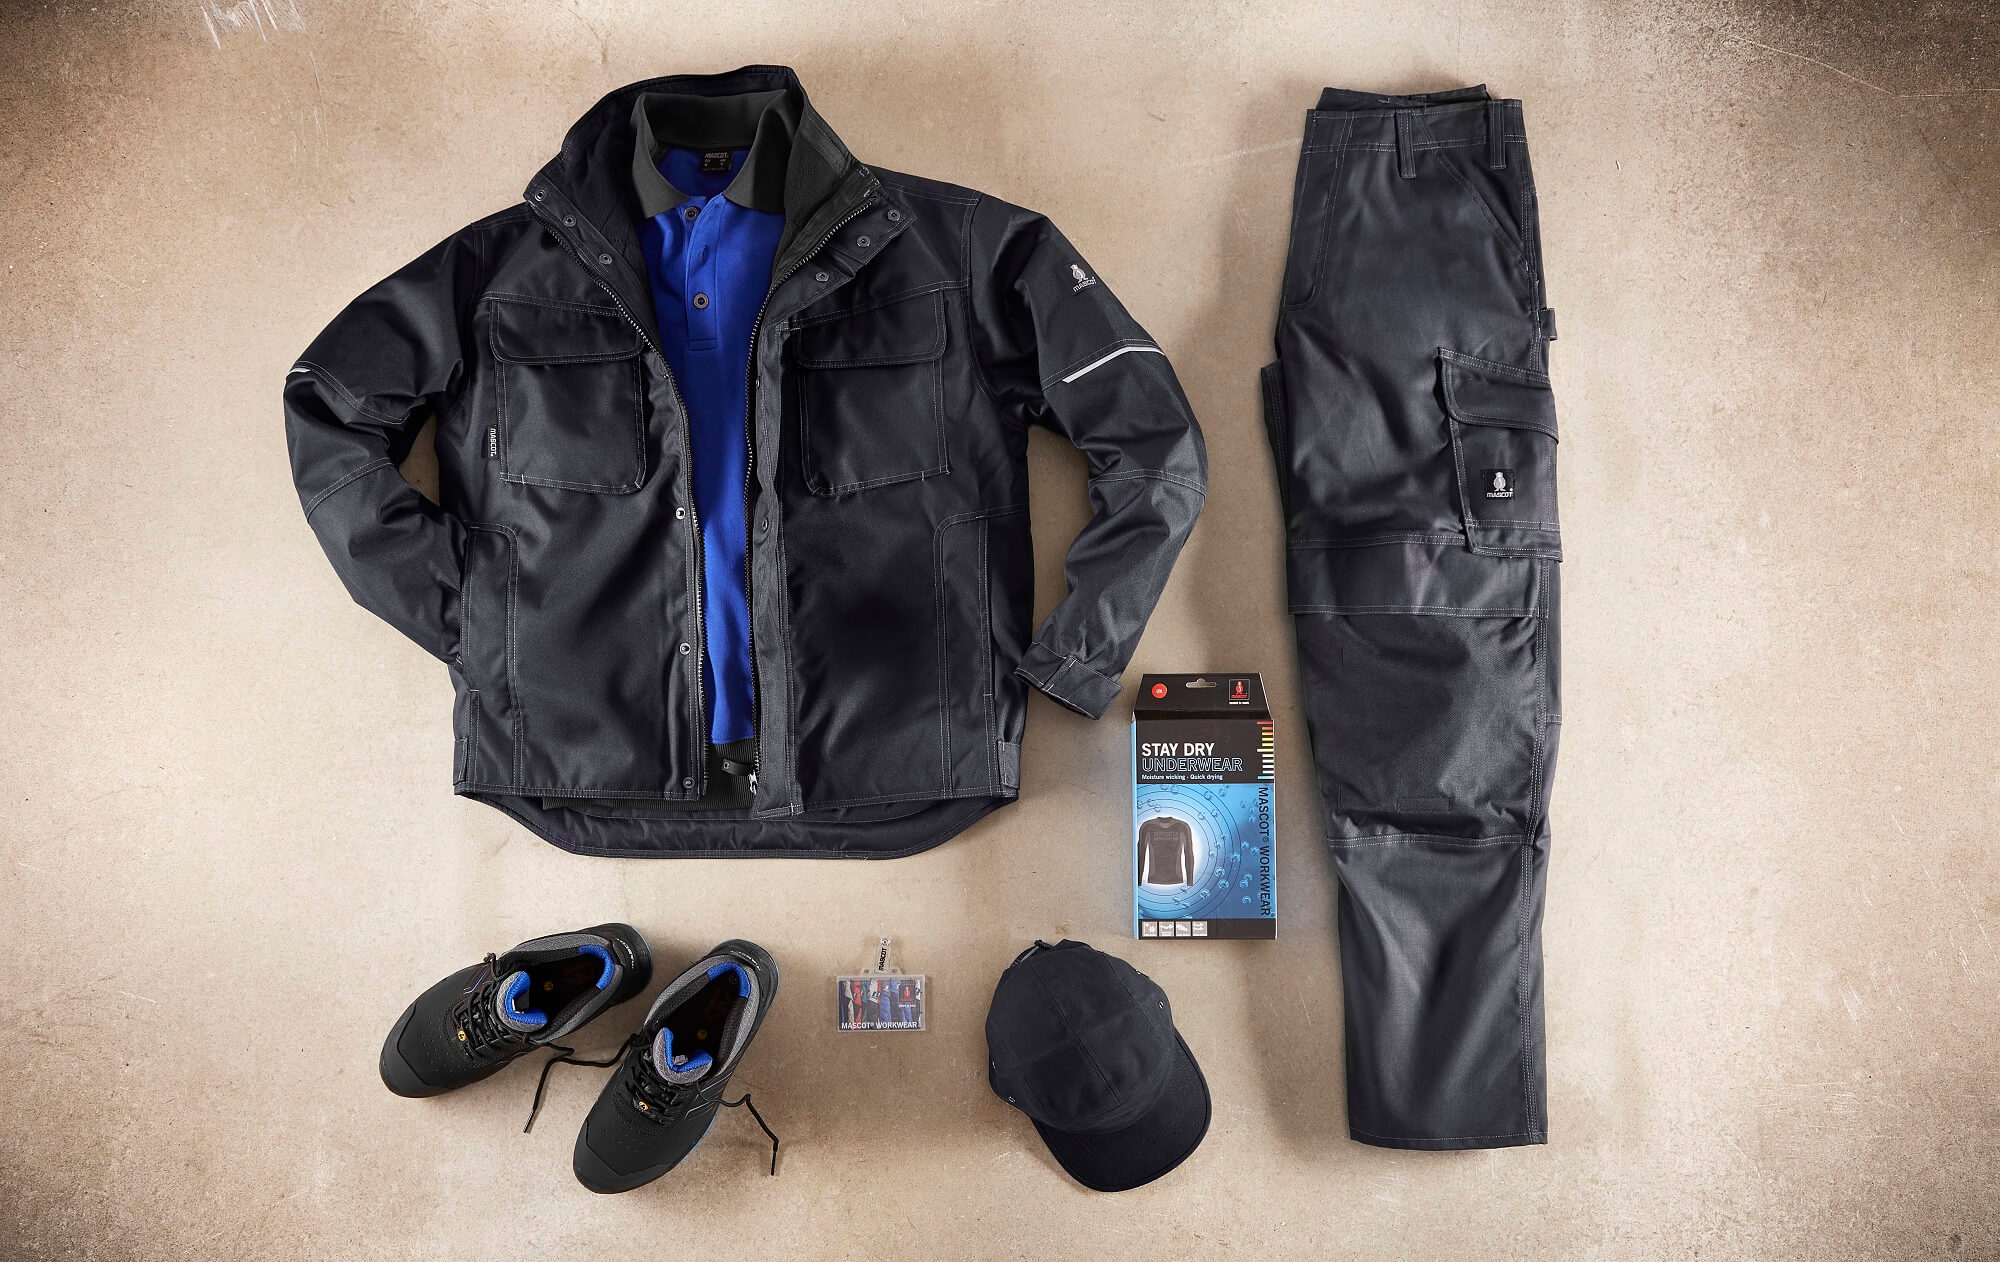 Black - Winter Jacket, Polo shirt, Pants. Underwear & Safety Shoe - Collage